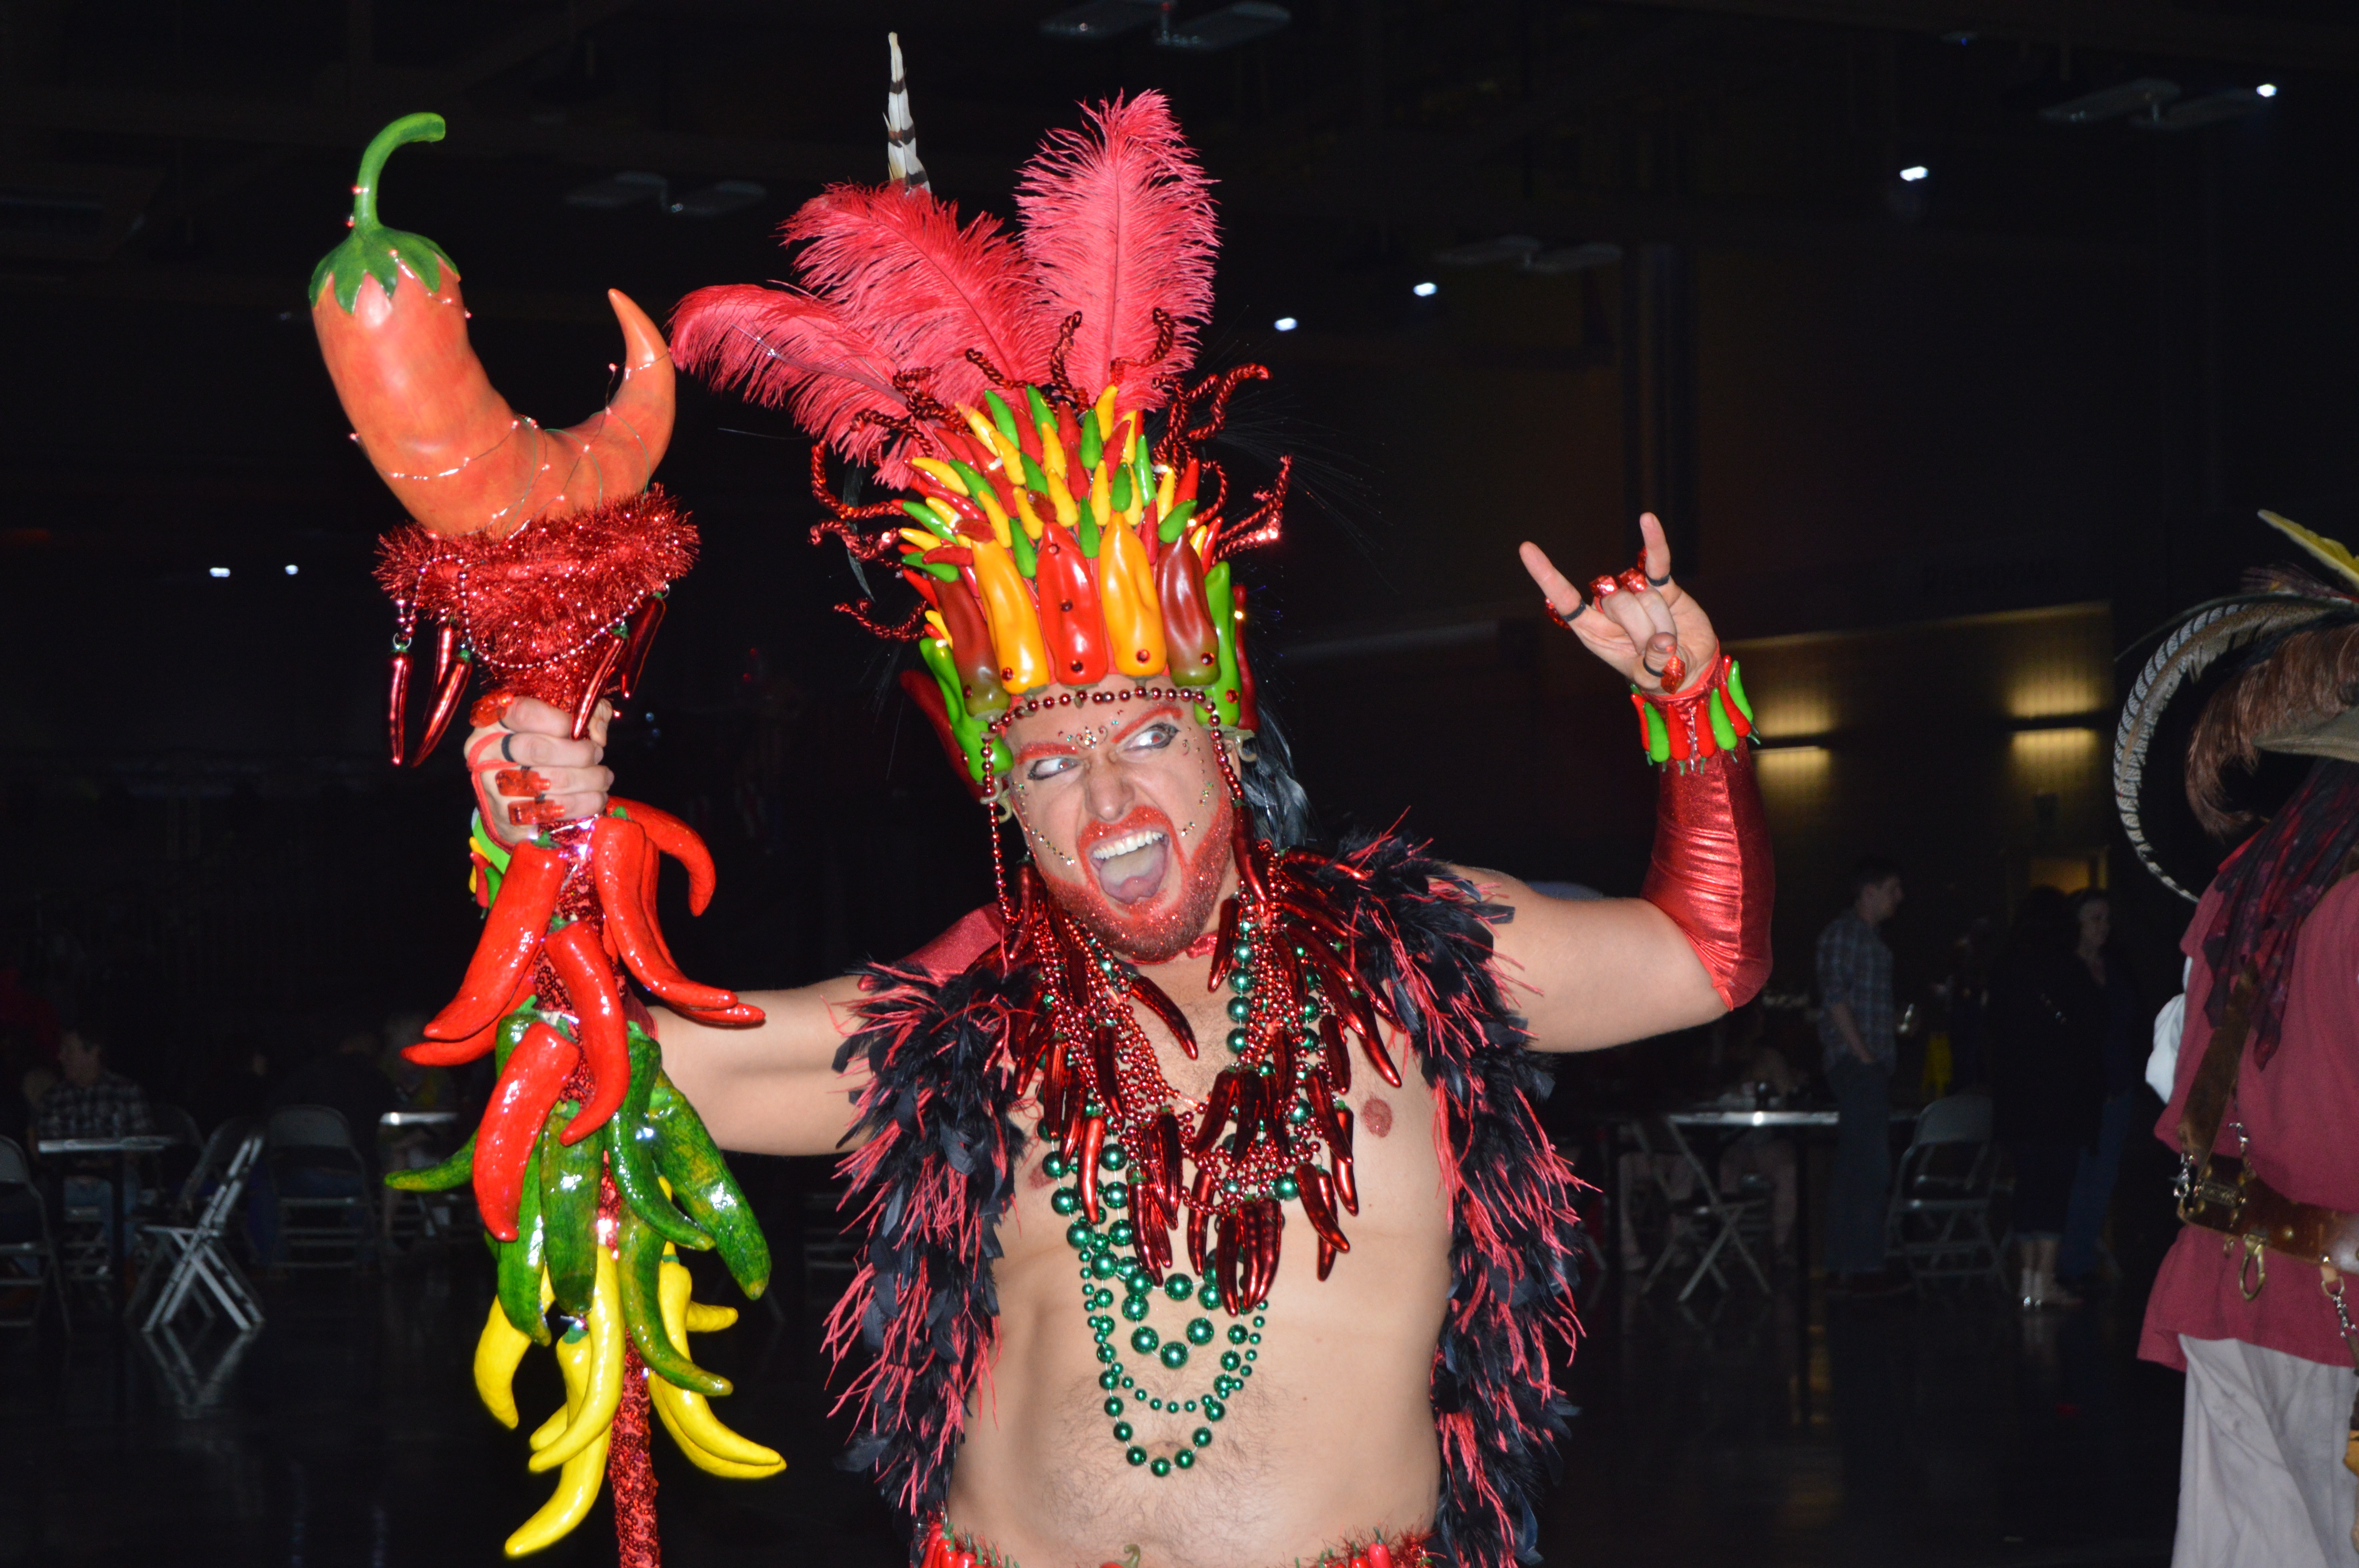 This is Nick Mulberg's third year at Carnaval.